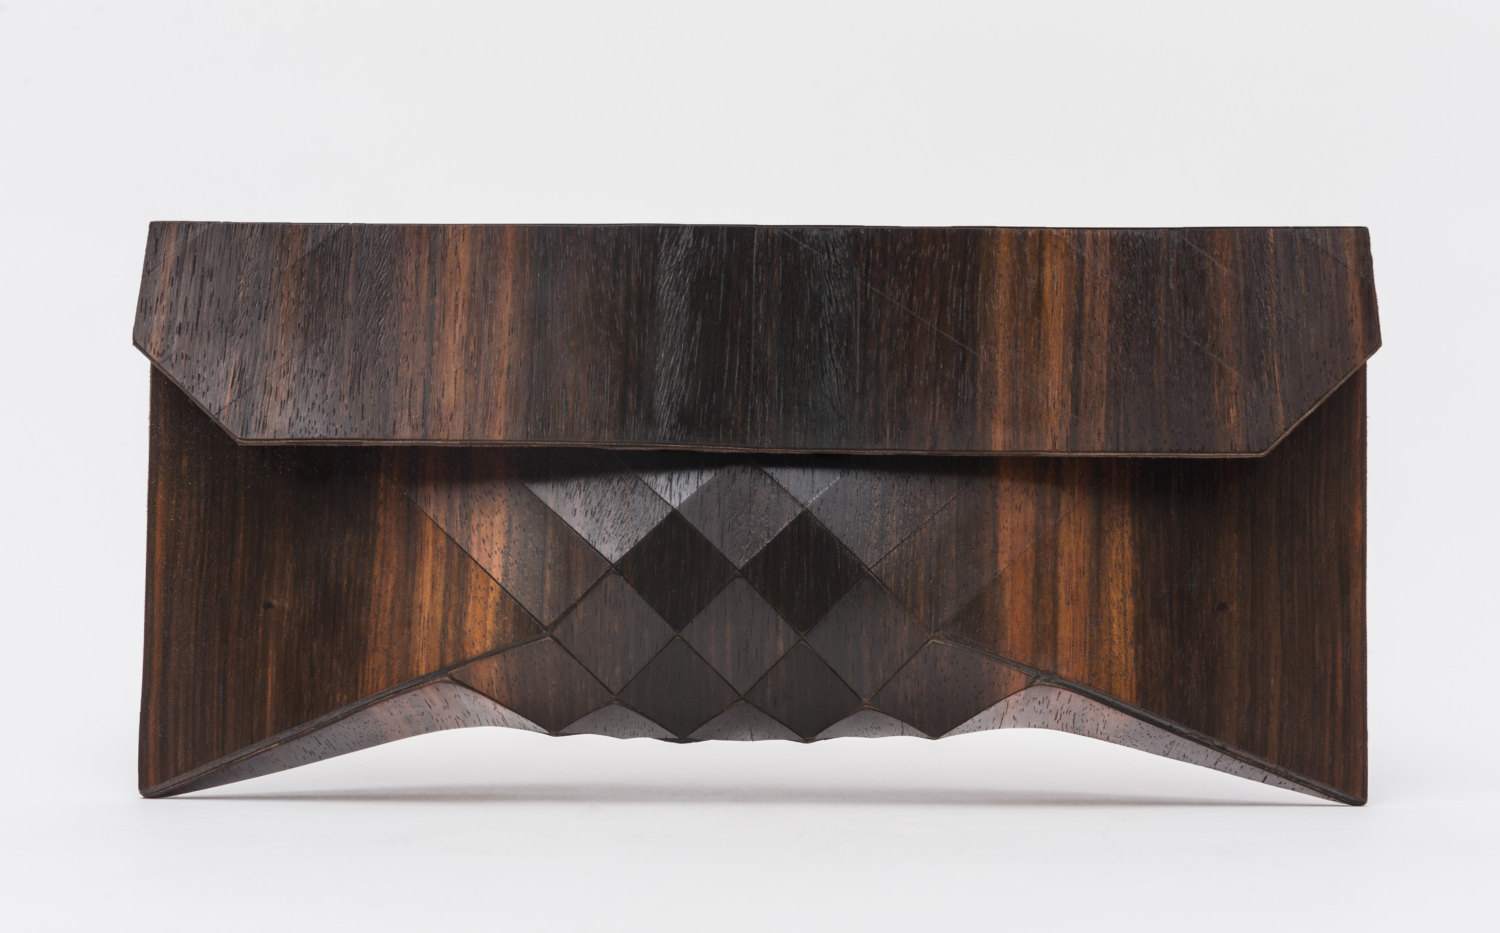 awesome-design-ideas-Wood-Clutch-TeslerMendelovitch-1